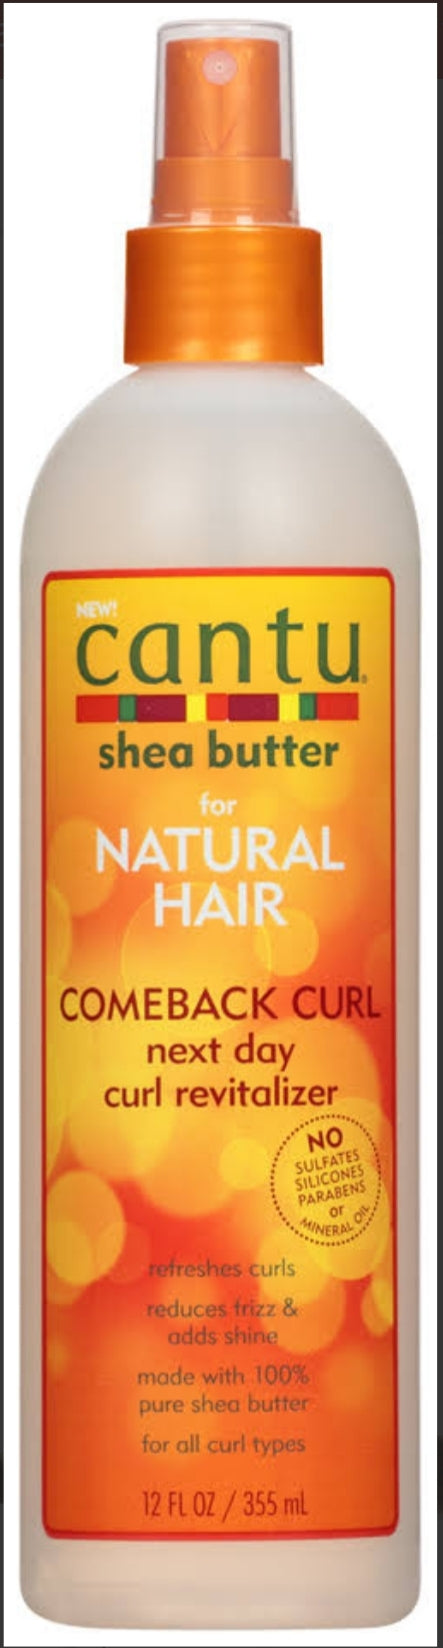 Cantu Shea Butter For Natural Hair Comeback Curl Next Day Curl Revitalizer 12 oz